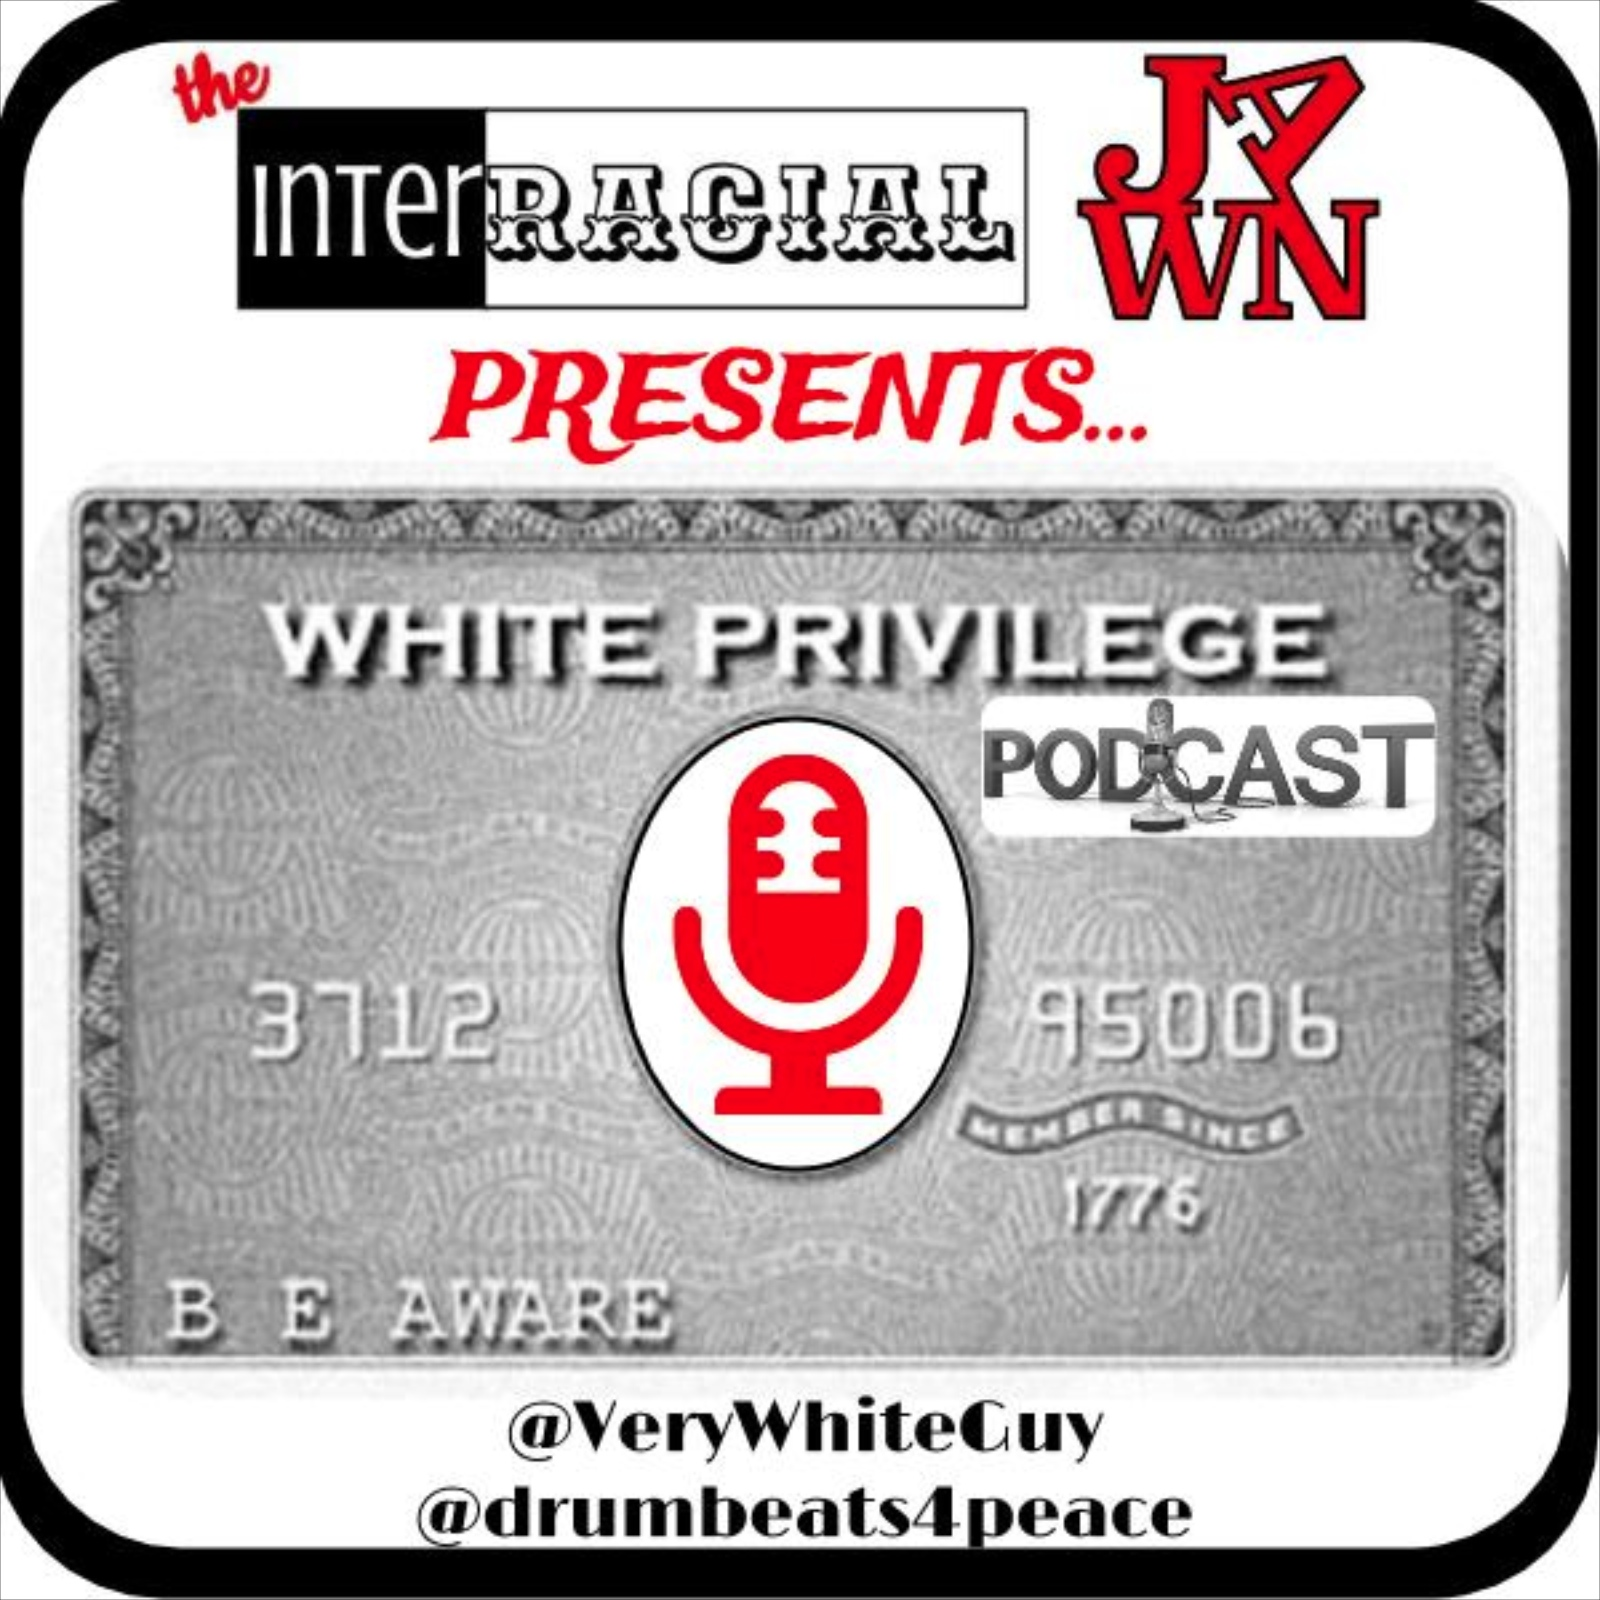 White Privilege Podcast – Interracial Jawn Podcast